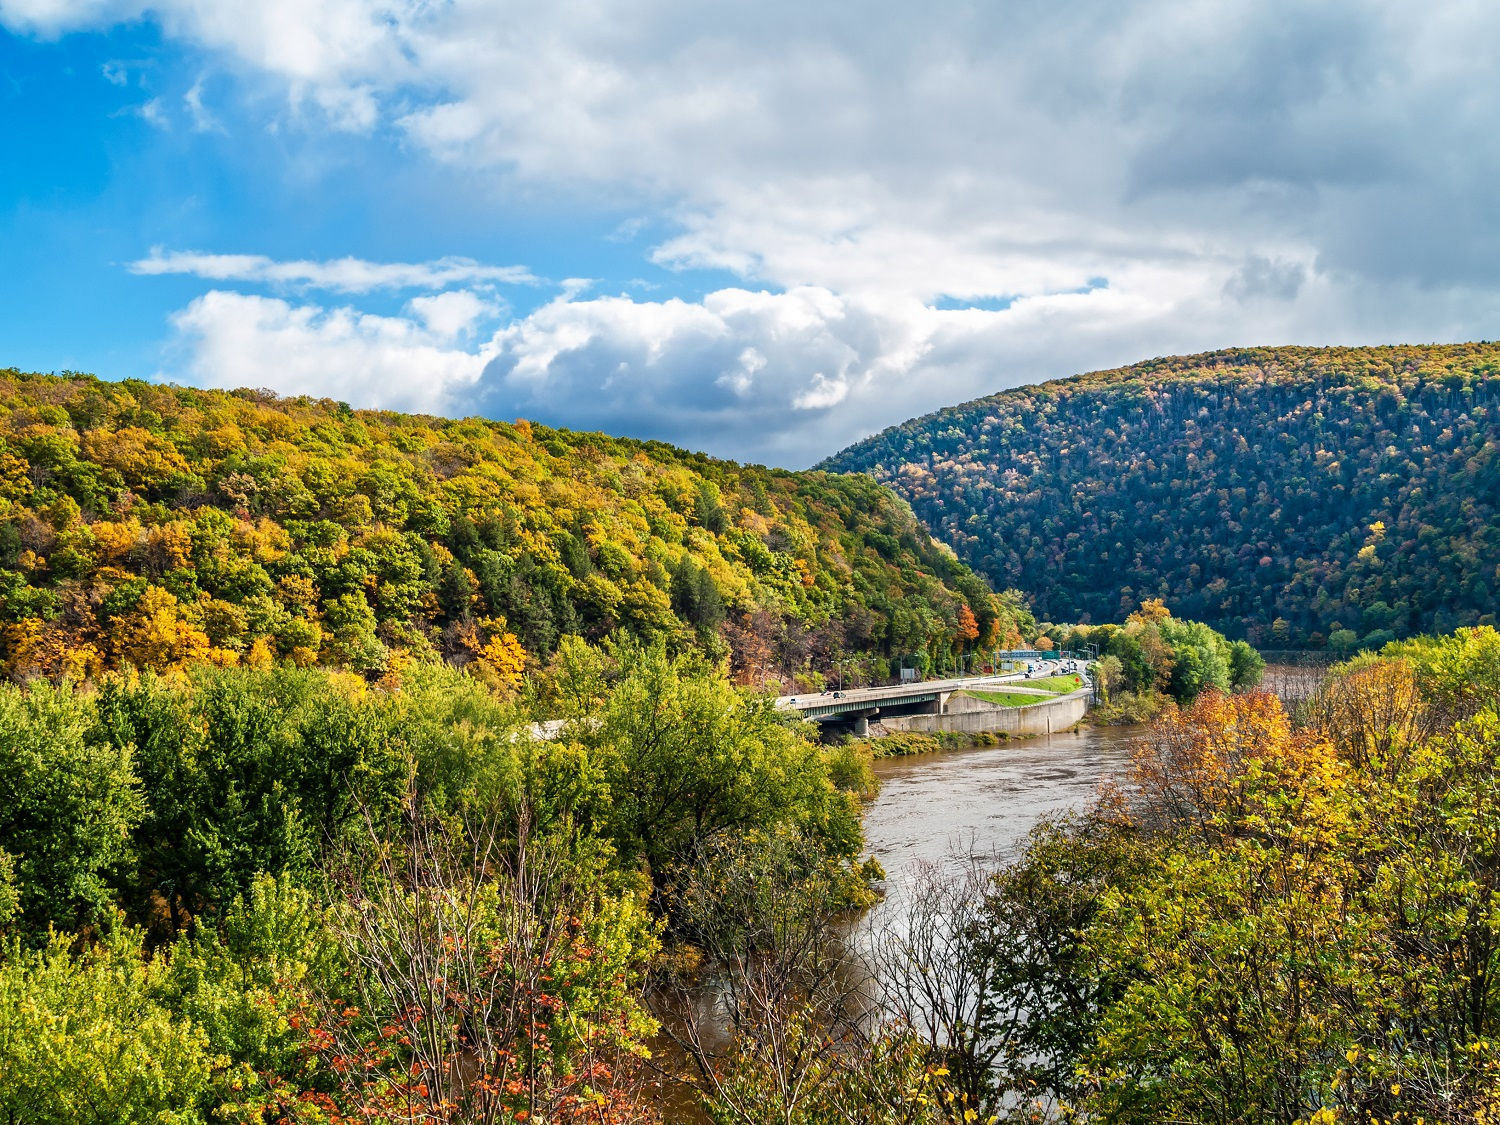 The Delaware Scenic Byway runs along the Pennsylvania border